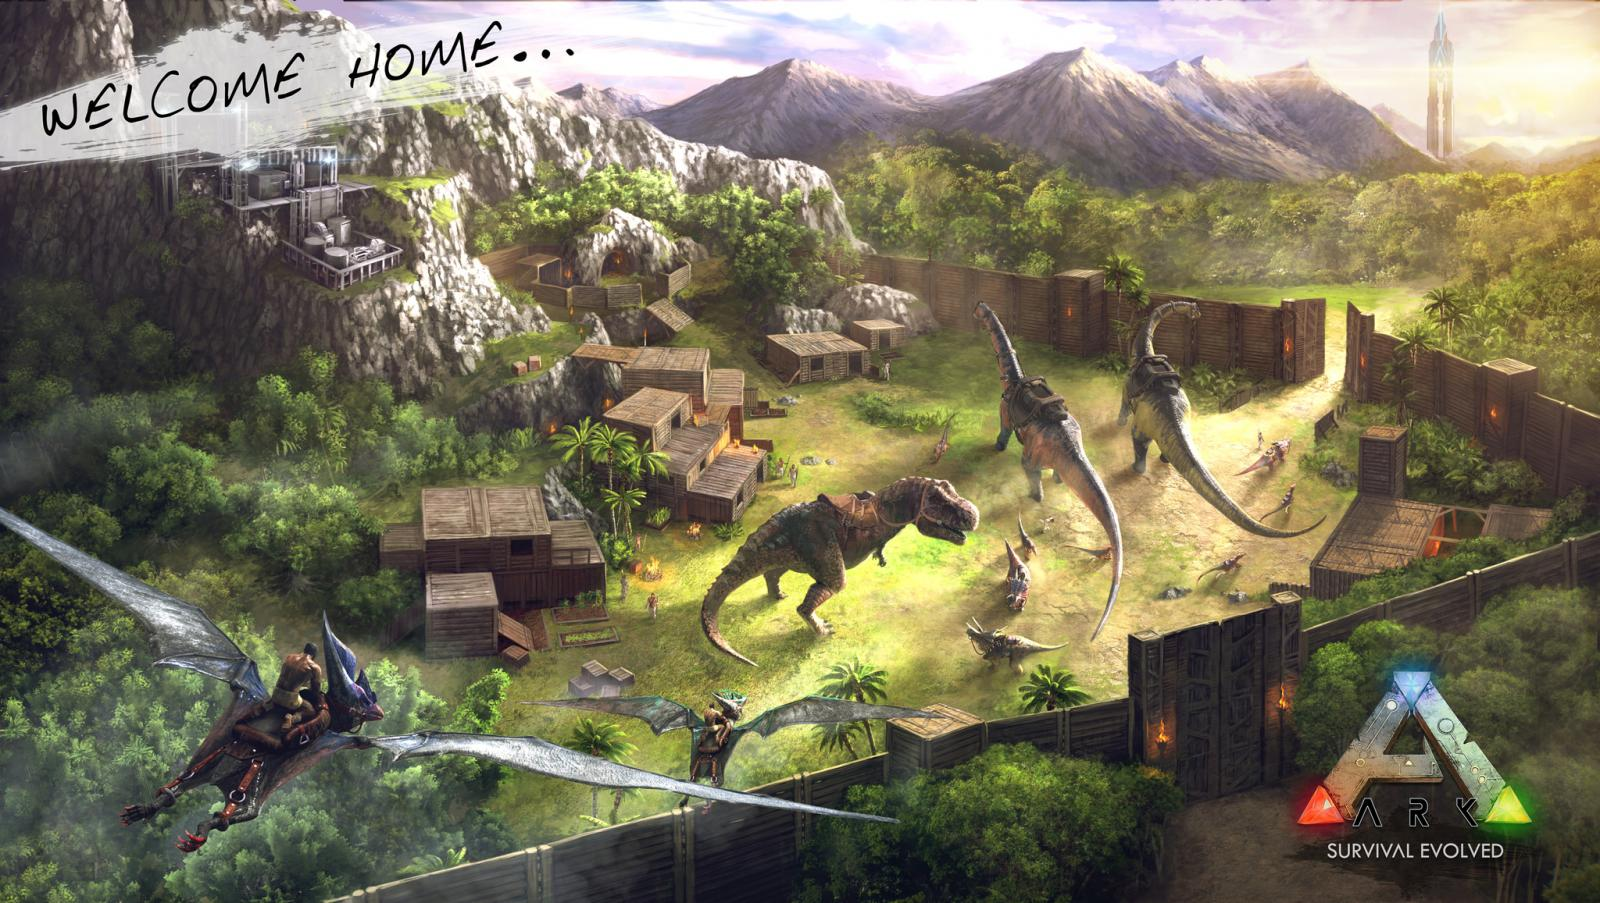 ARK: Survival Evolved - Welcome Home